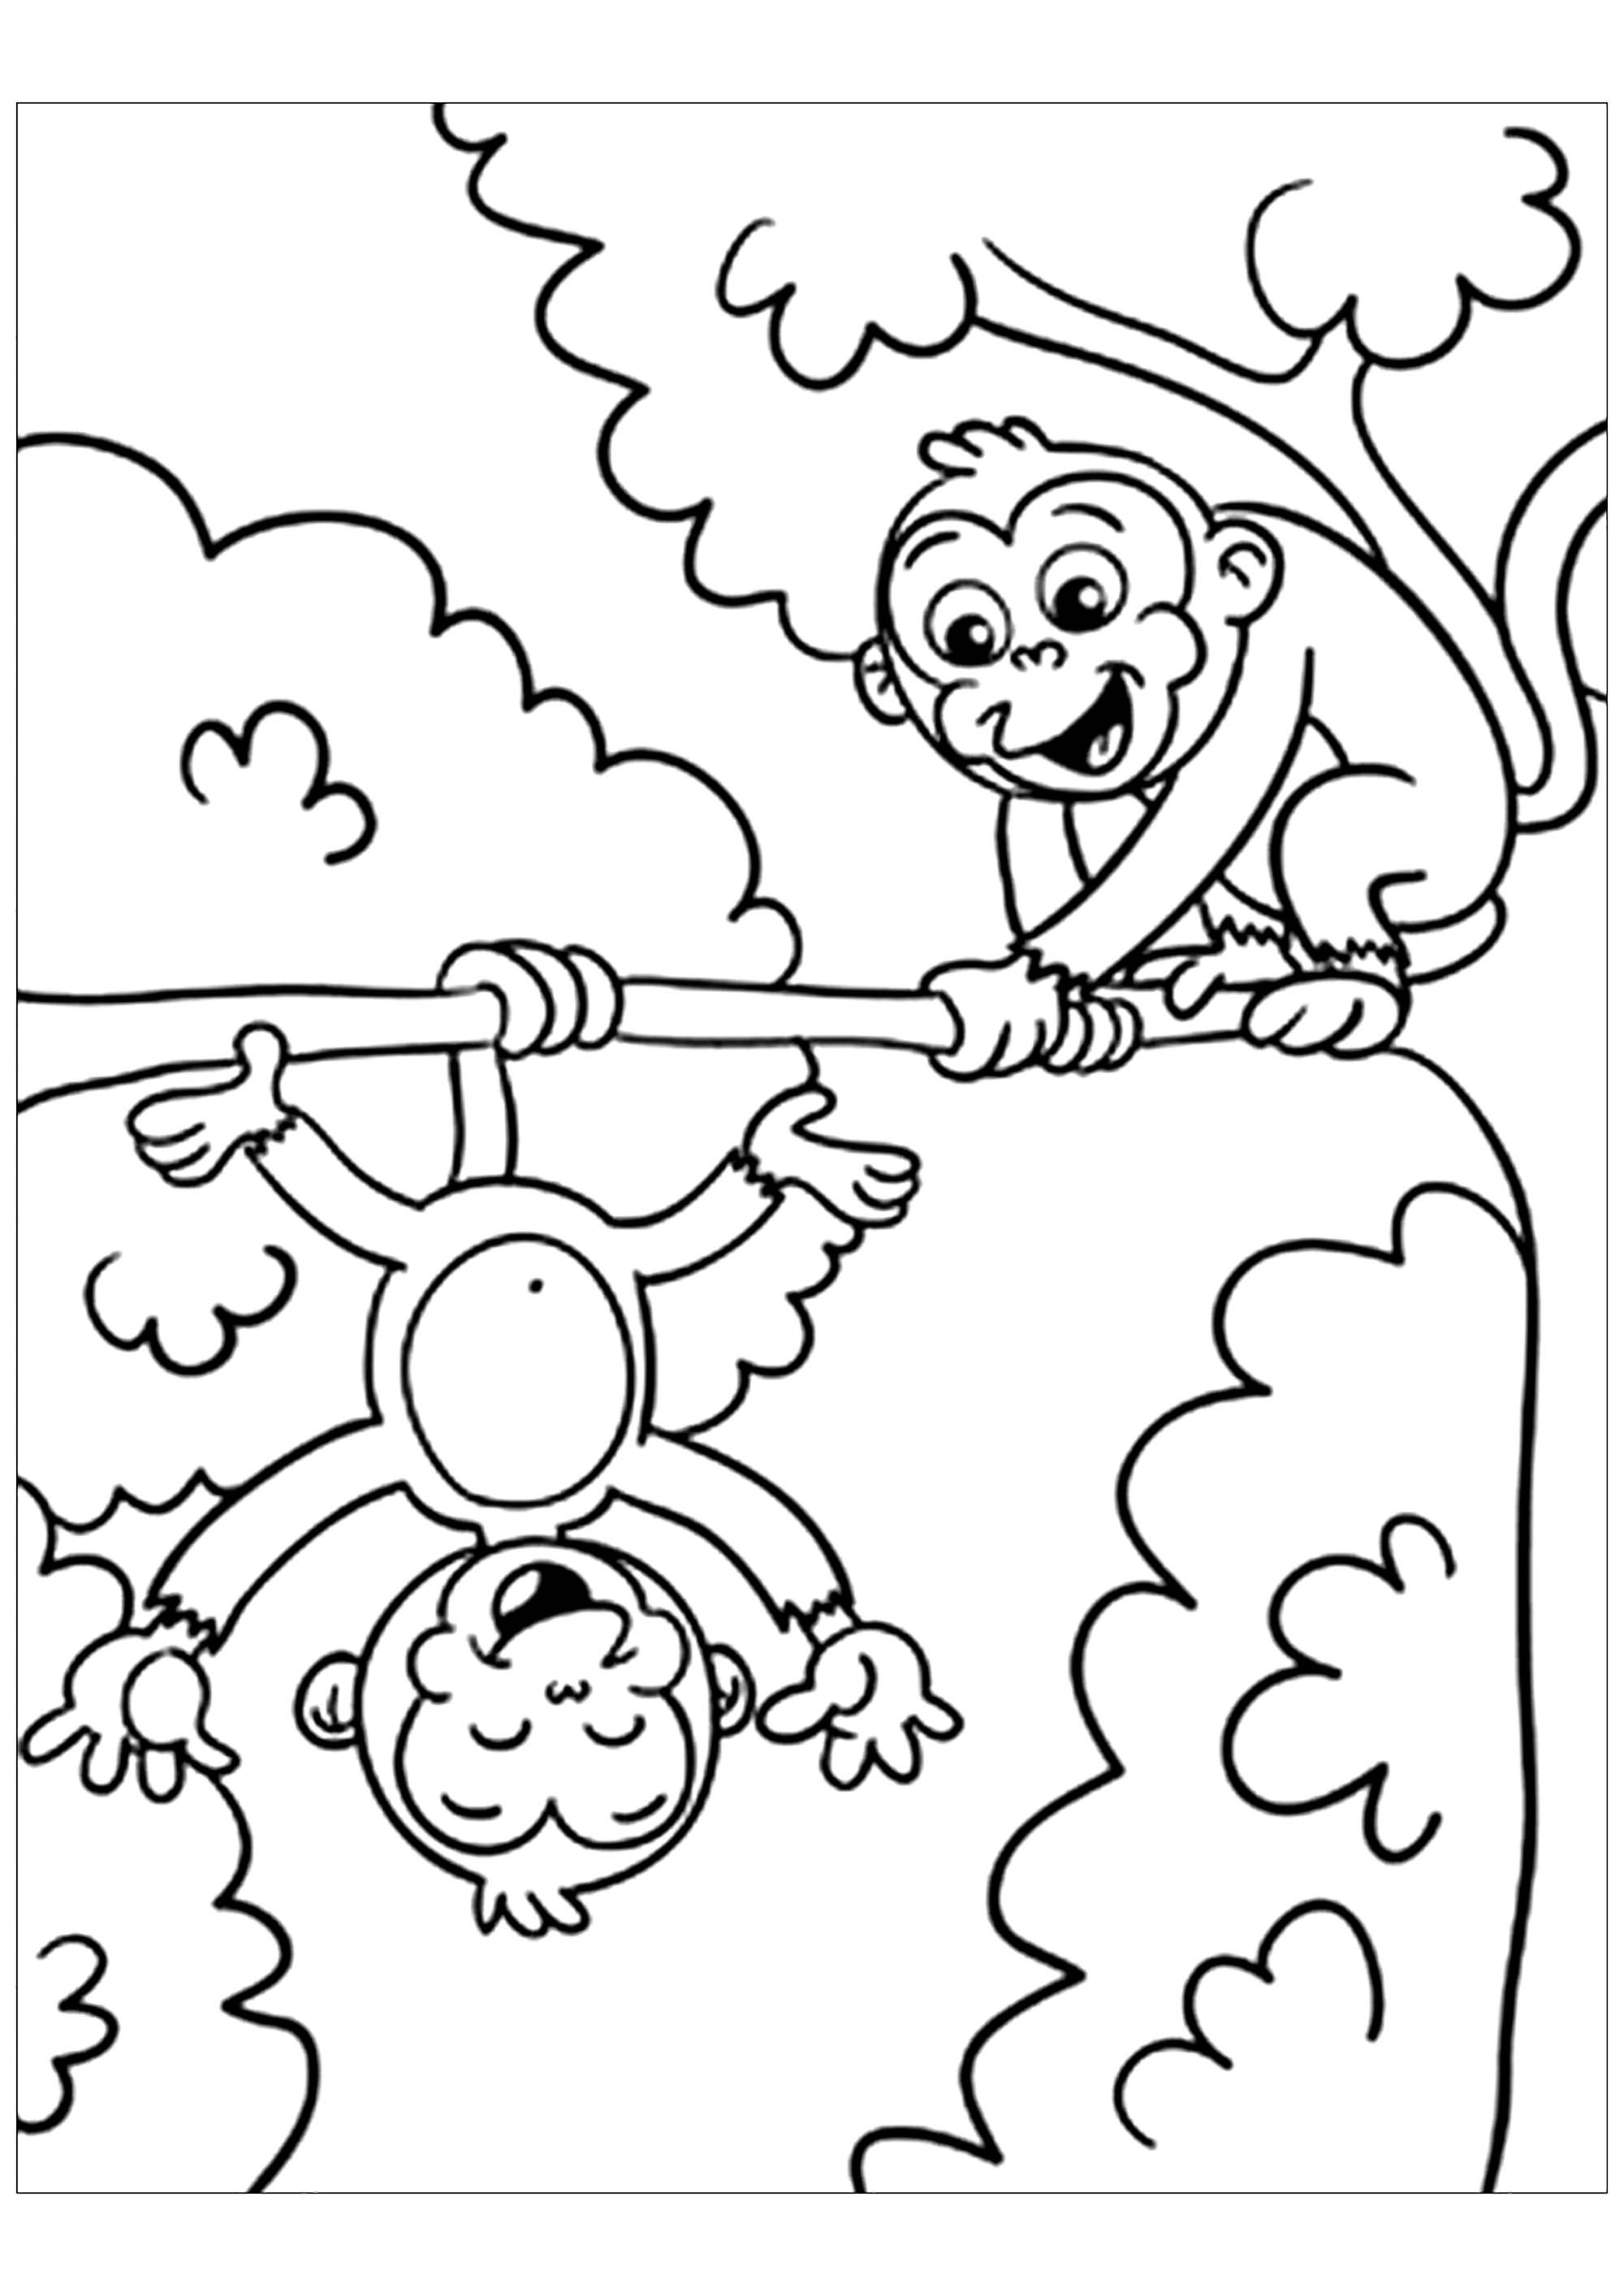 coloring printable pages for kids 40 exclusive kids coloring pages ideas we need fun for pages printable coloring kids